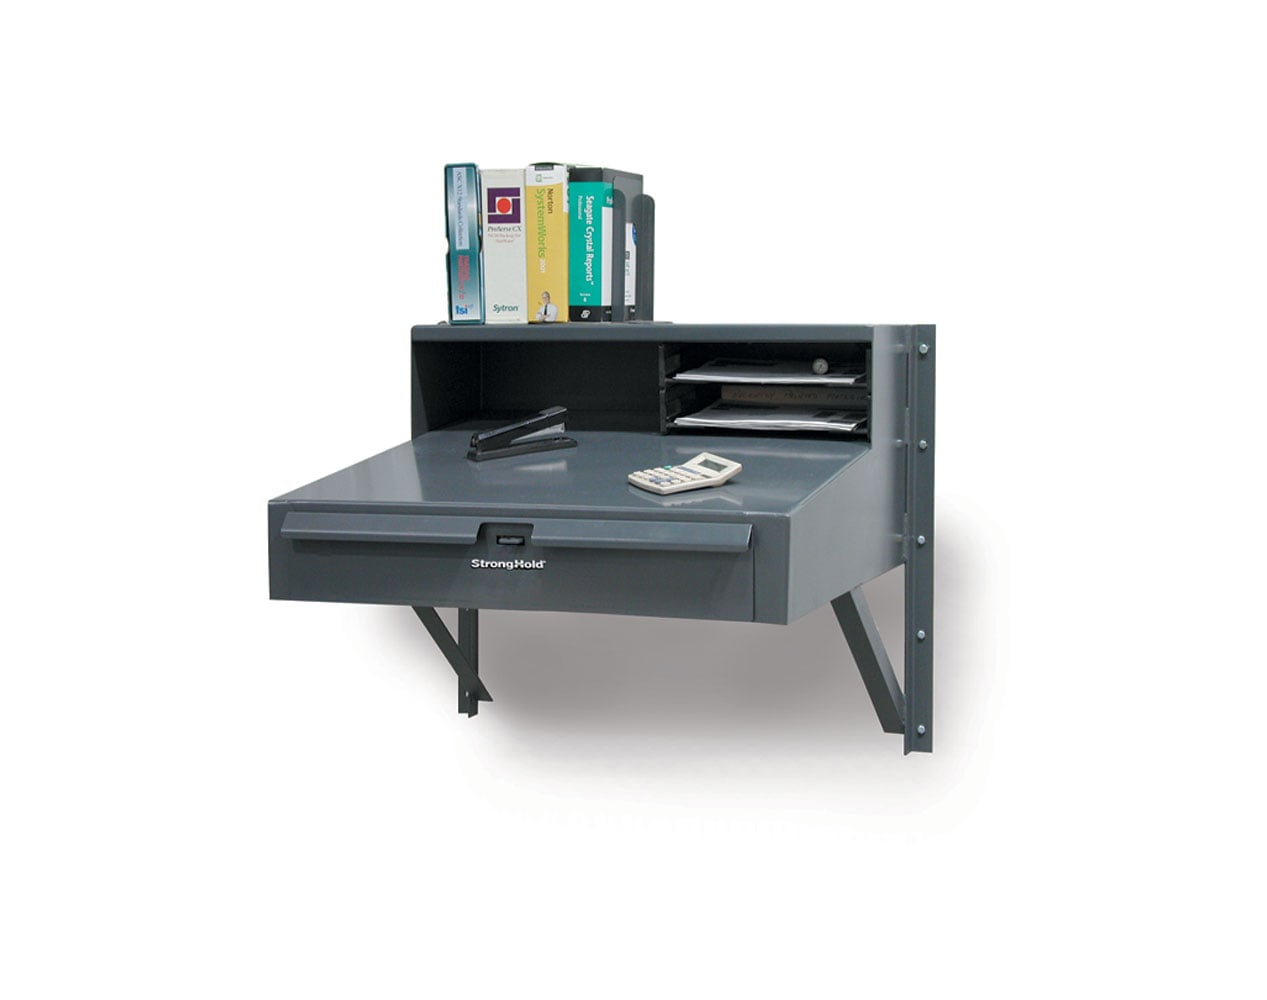 Extra Heavy Duty 12 GA Stainless Steel Wall-Mounted Shop Desk with 1 Drawer, Riser Shelf – 30 In. W x 28 In. D x 27 In. H